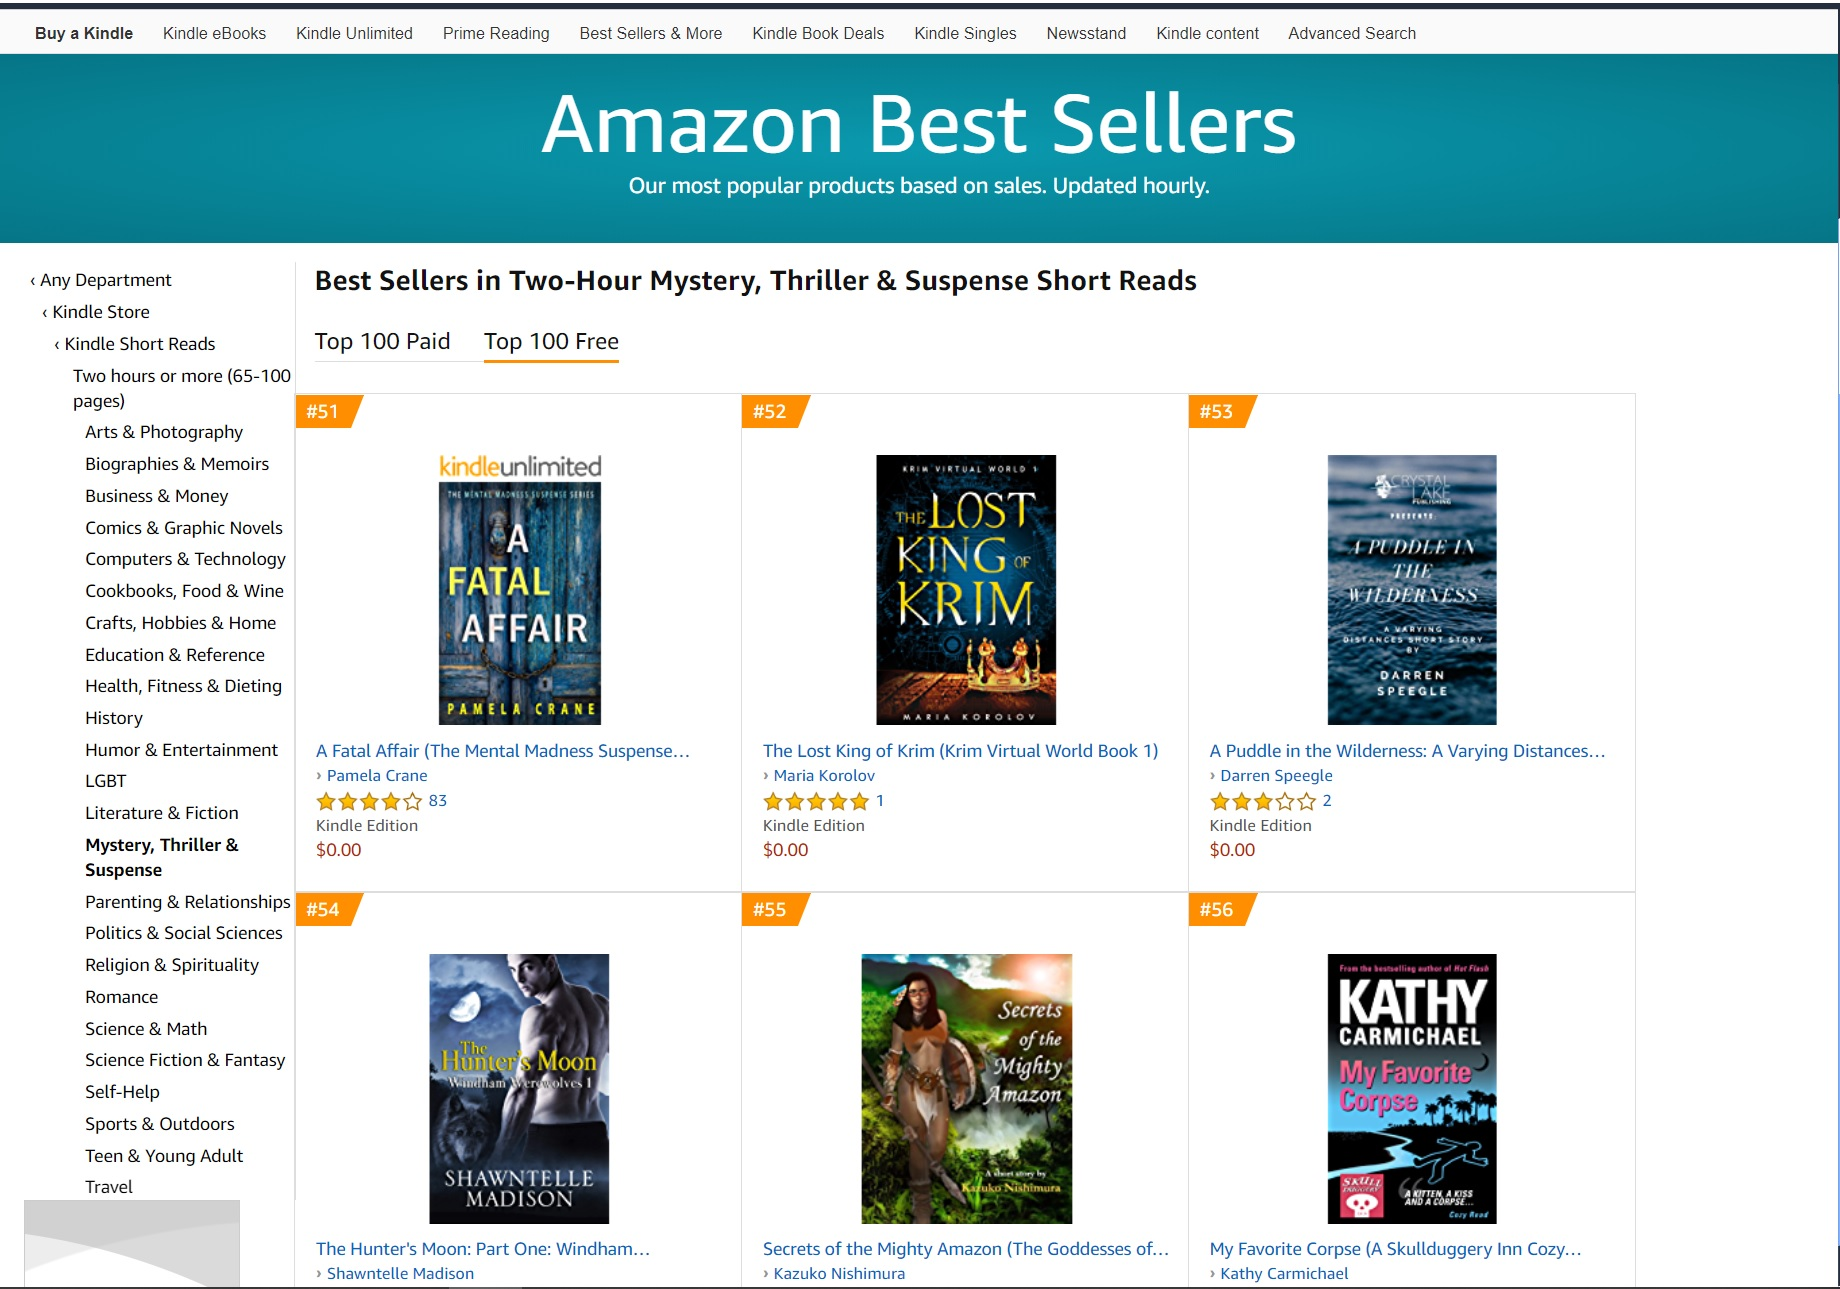 The Lost King of Krim hits multiple Amazon category bestseller lists